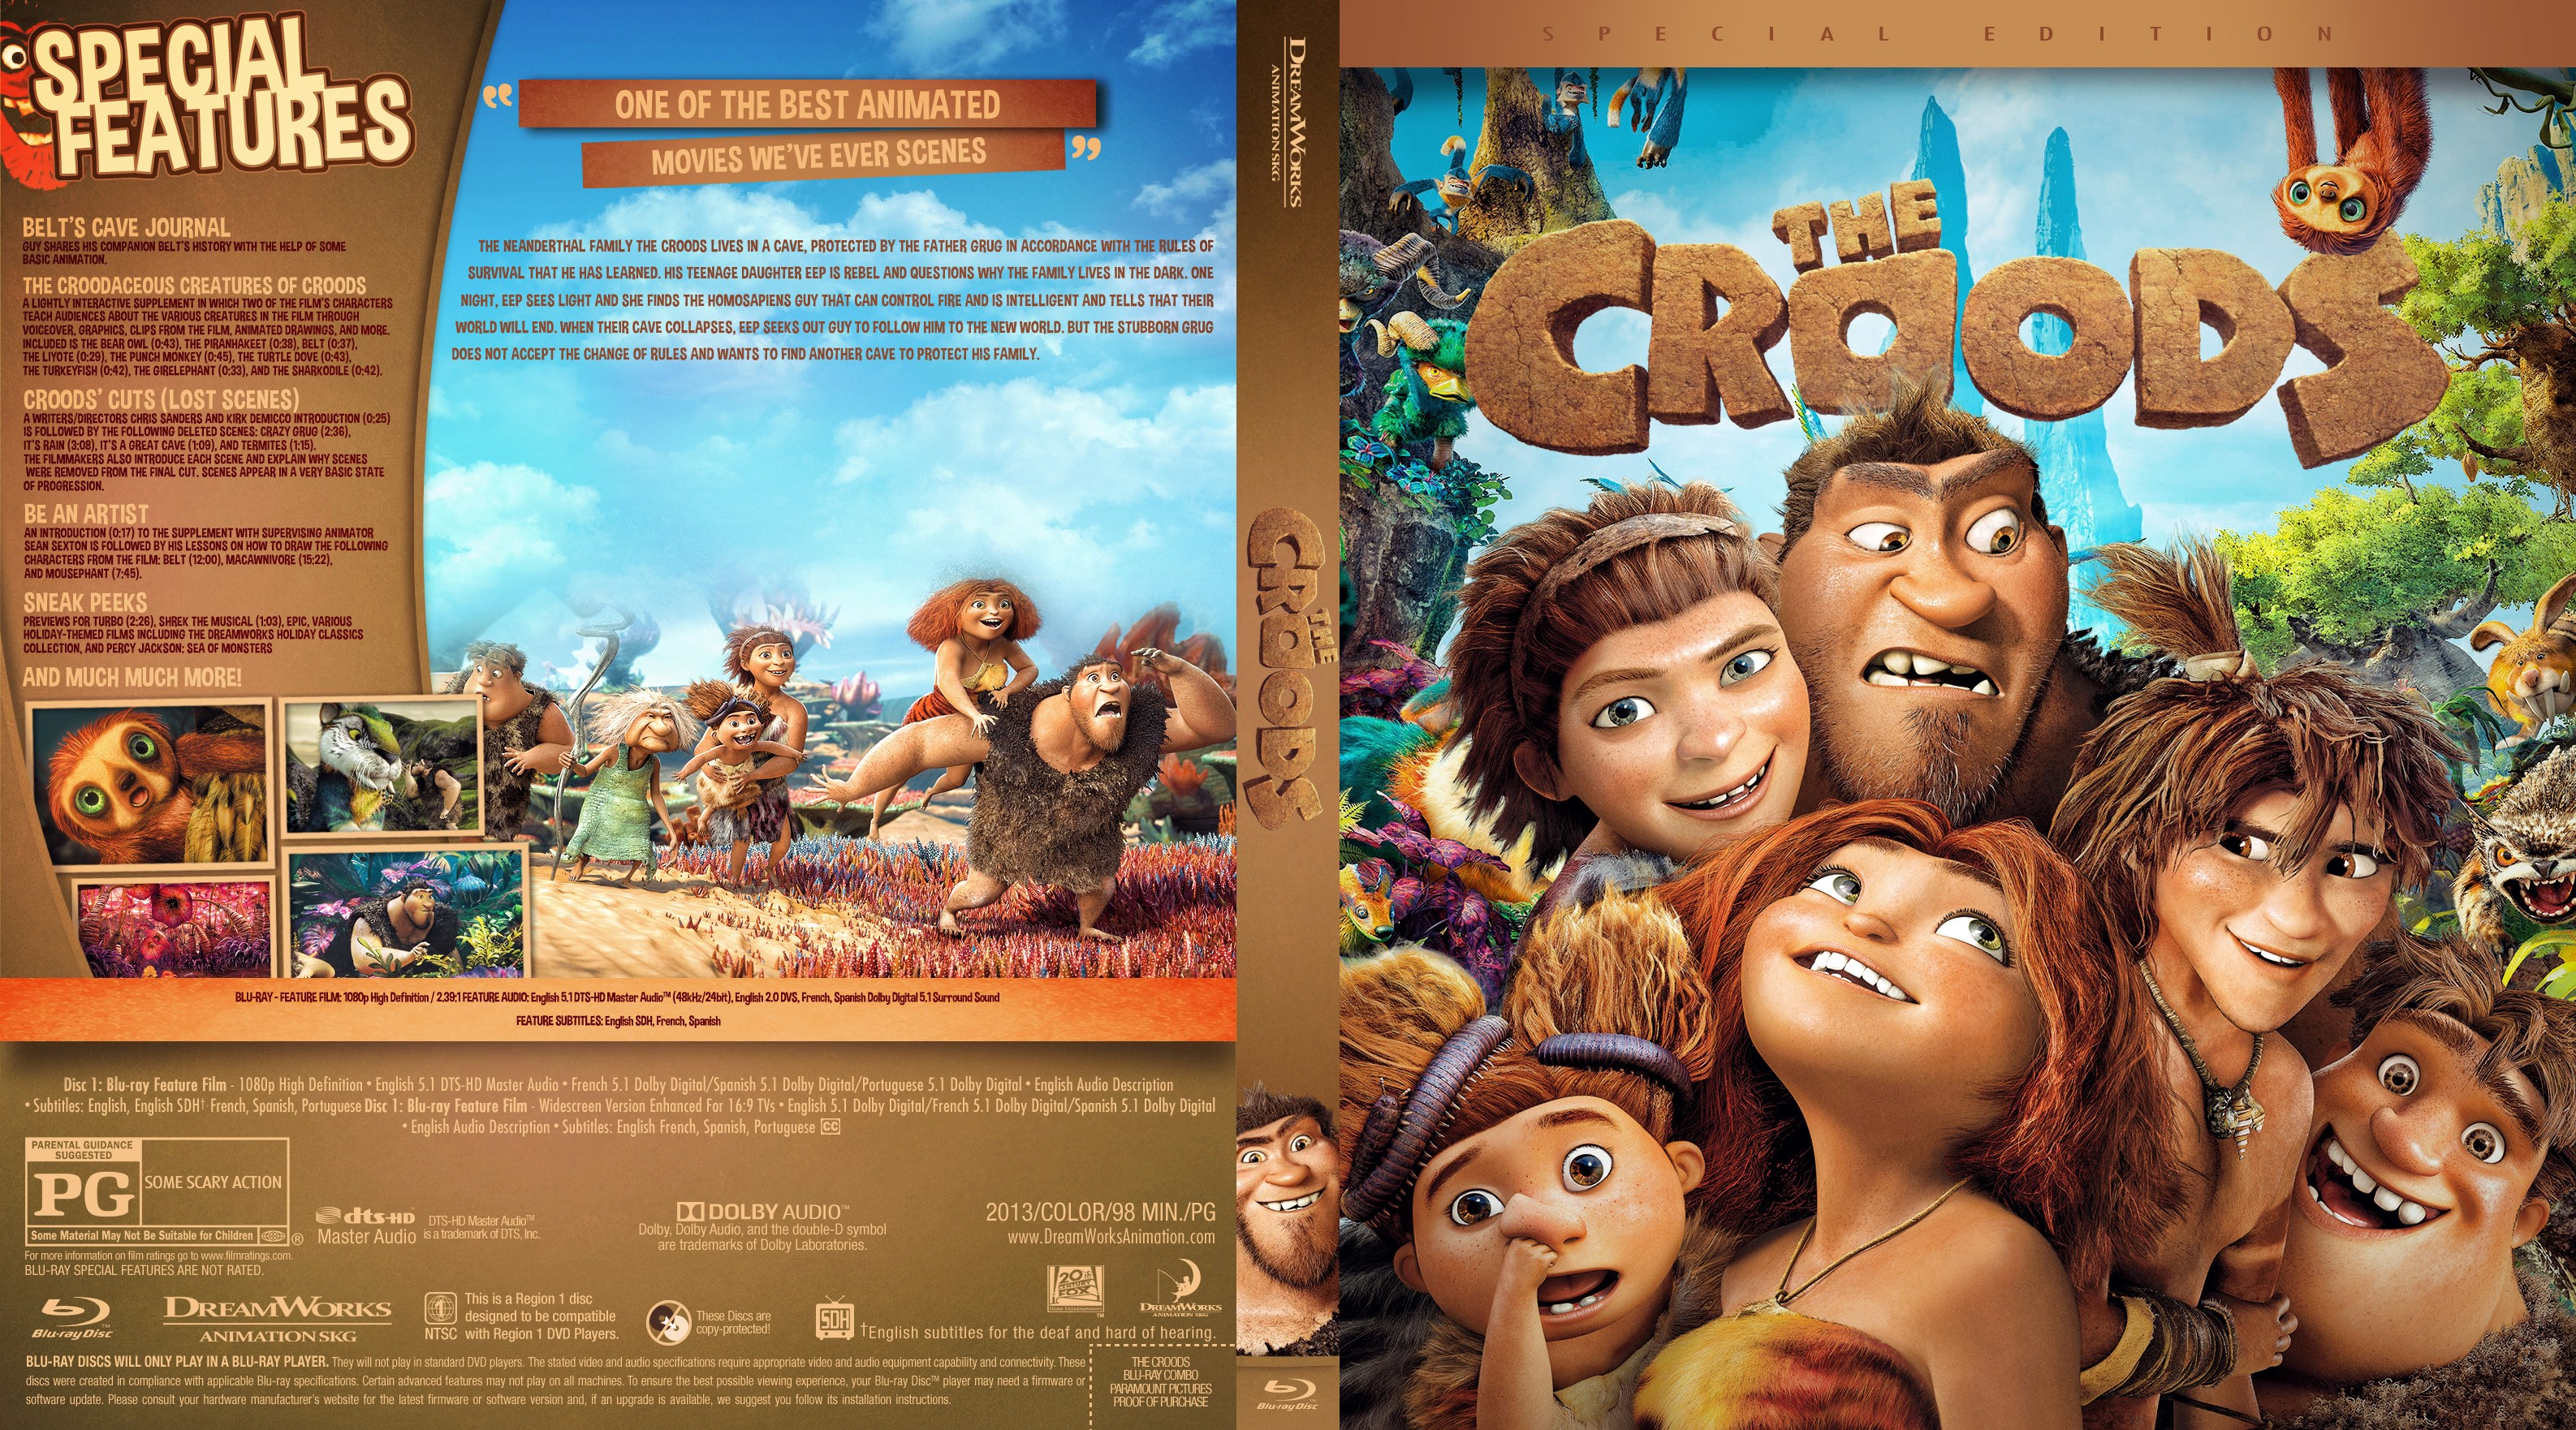 the croods bluray cover - cover addict - freecovers